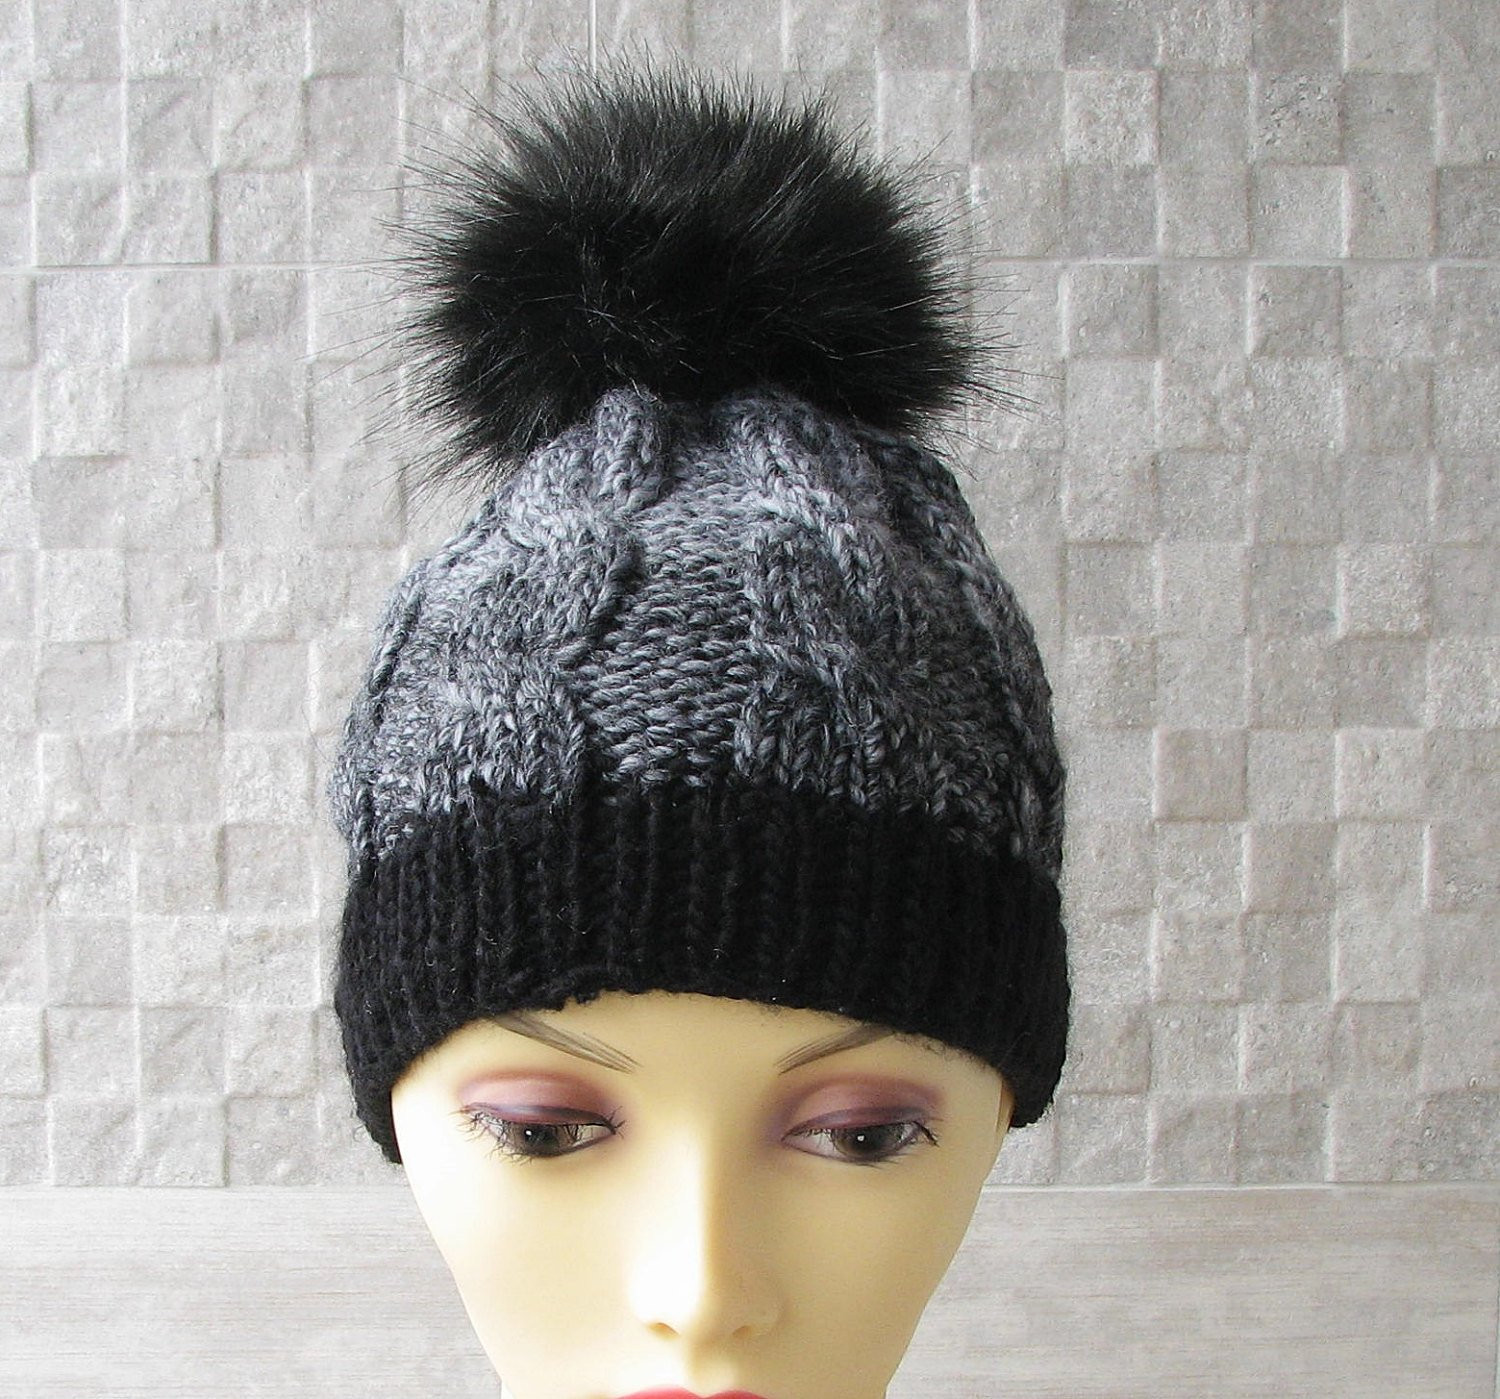 Elegant Knitted Chemo Hat for Women Knit Hats with Pom Pom Beanie Hat Knitted Chemo Hats Of Incredible 50 Models Knitted Chemo Hats